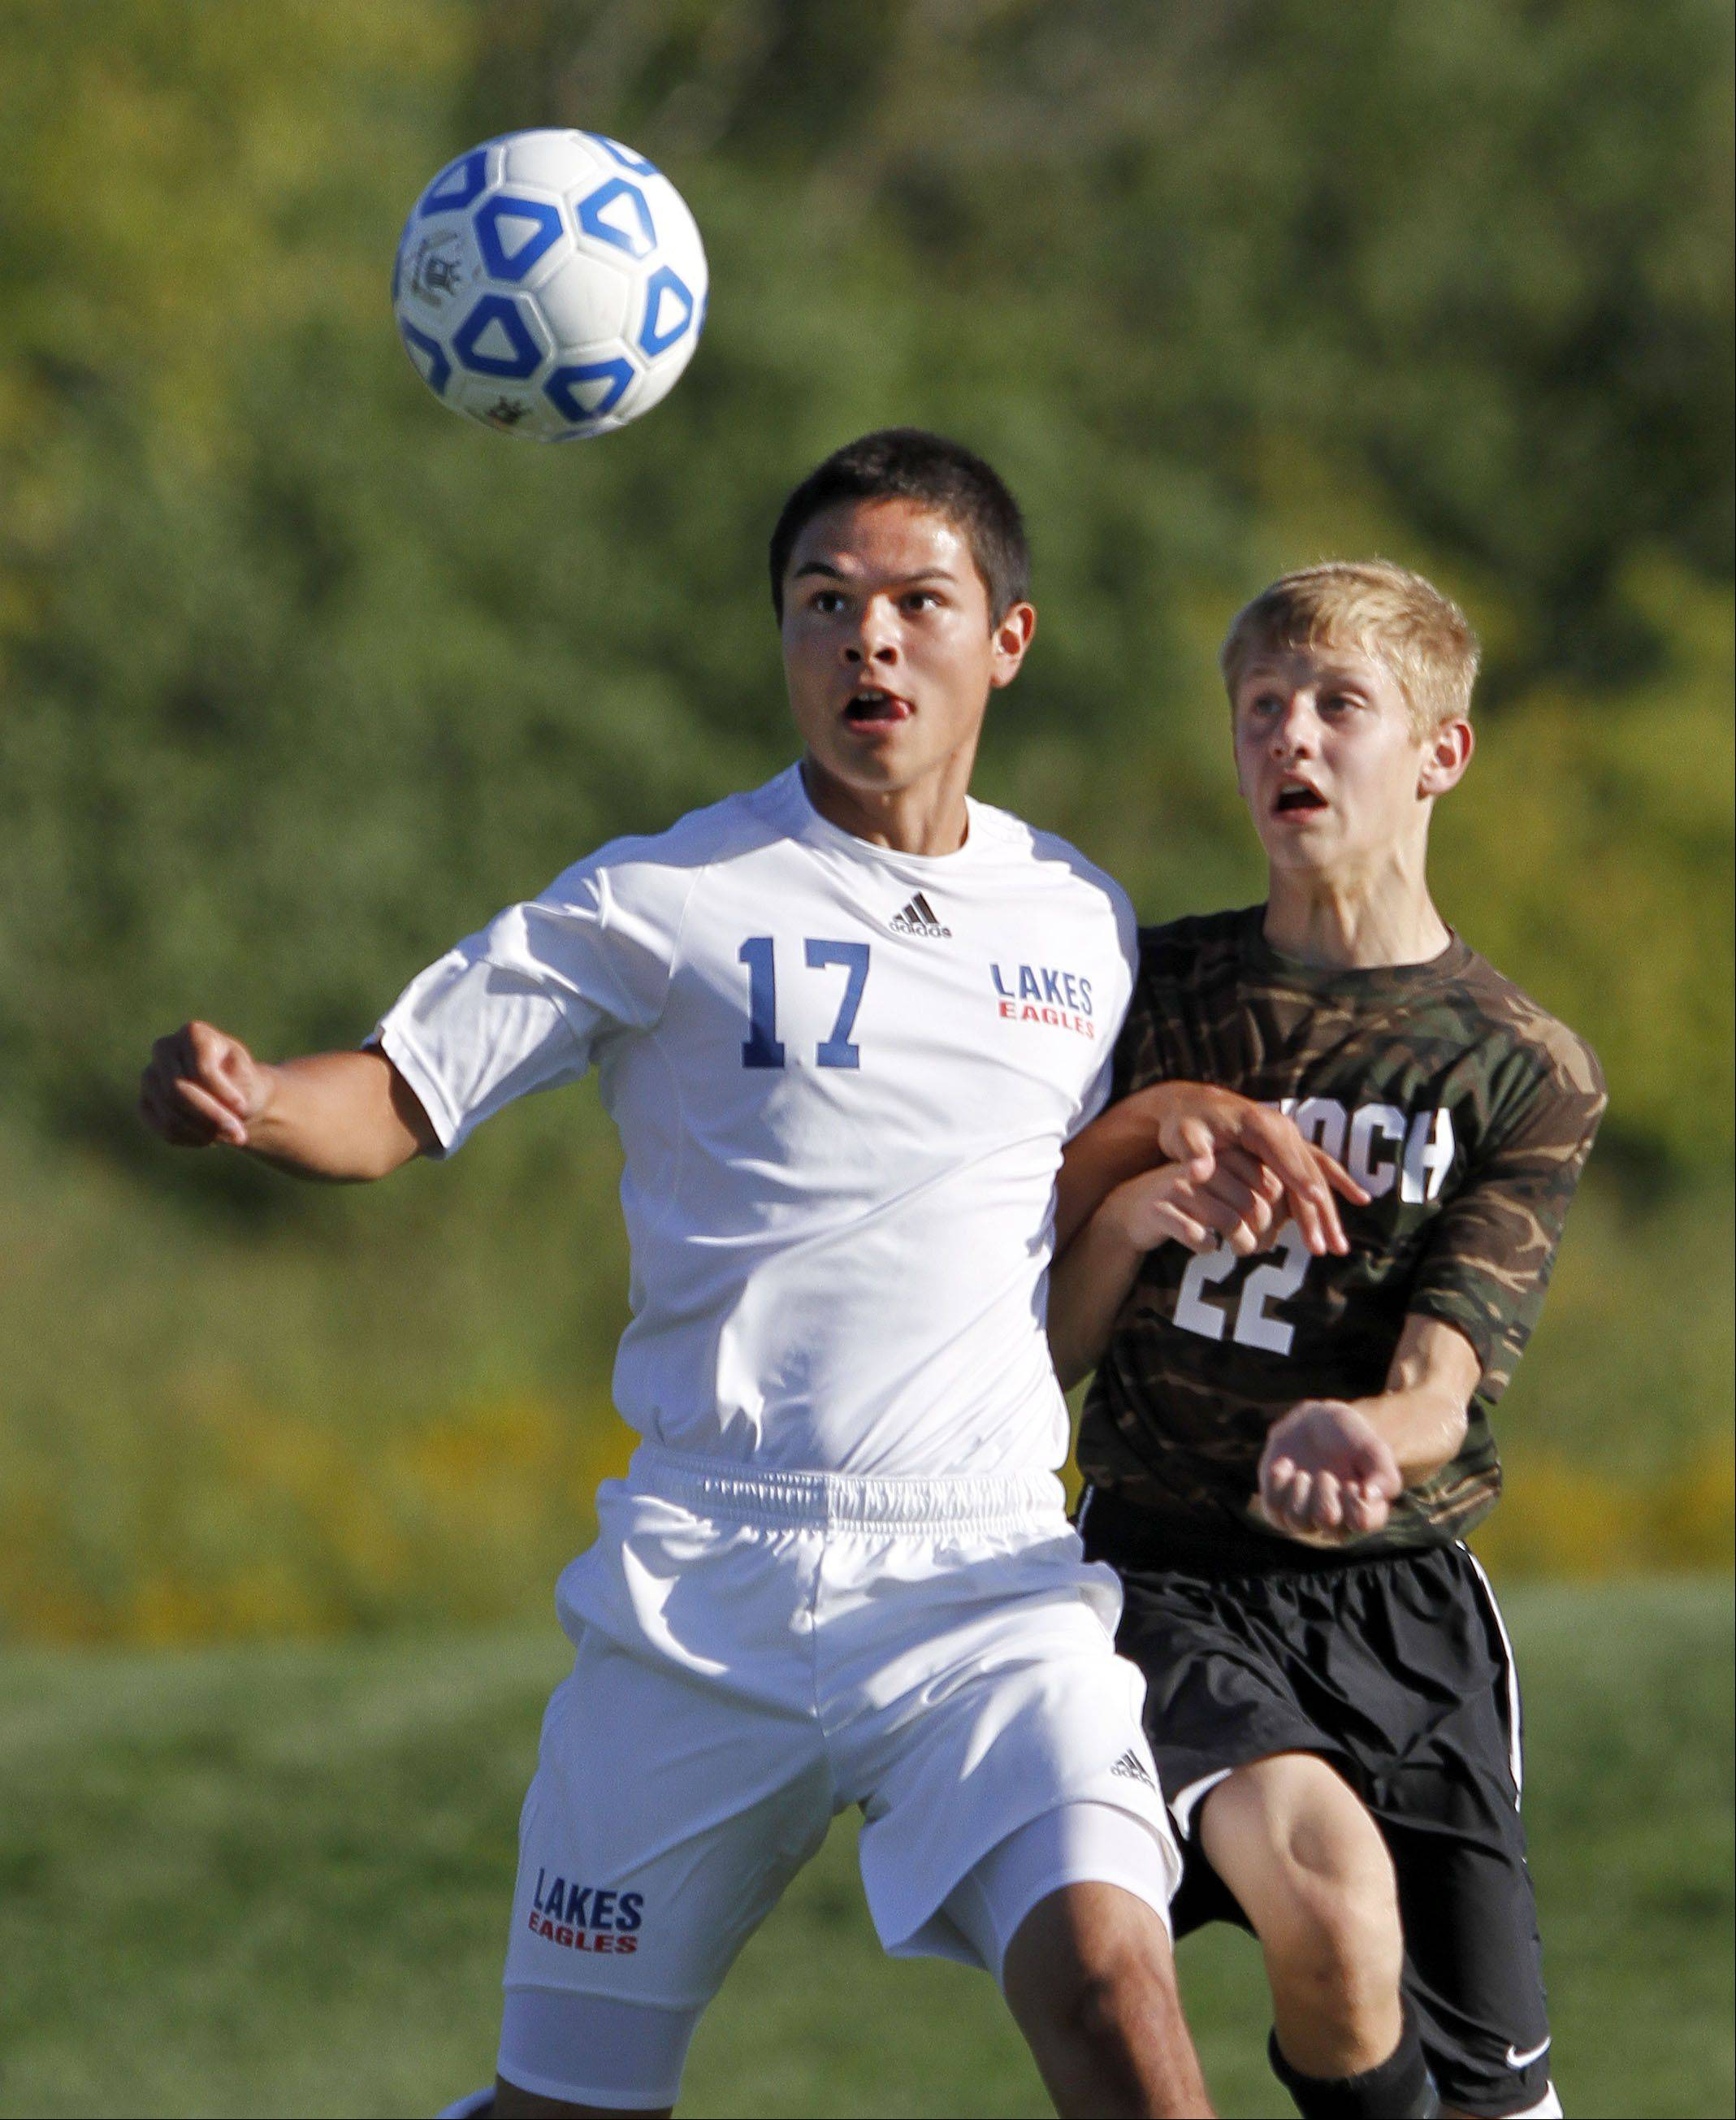 Lakes' Parker Edwards, left, and Antioch's Danny Brito battle for the ball Tuesday at Lakes.